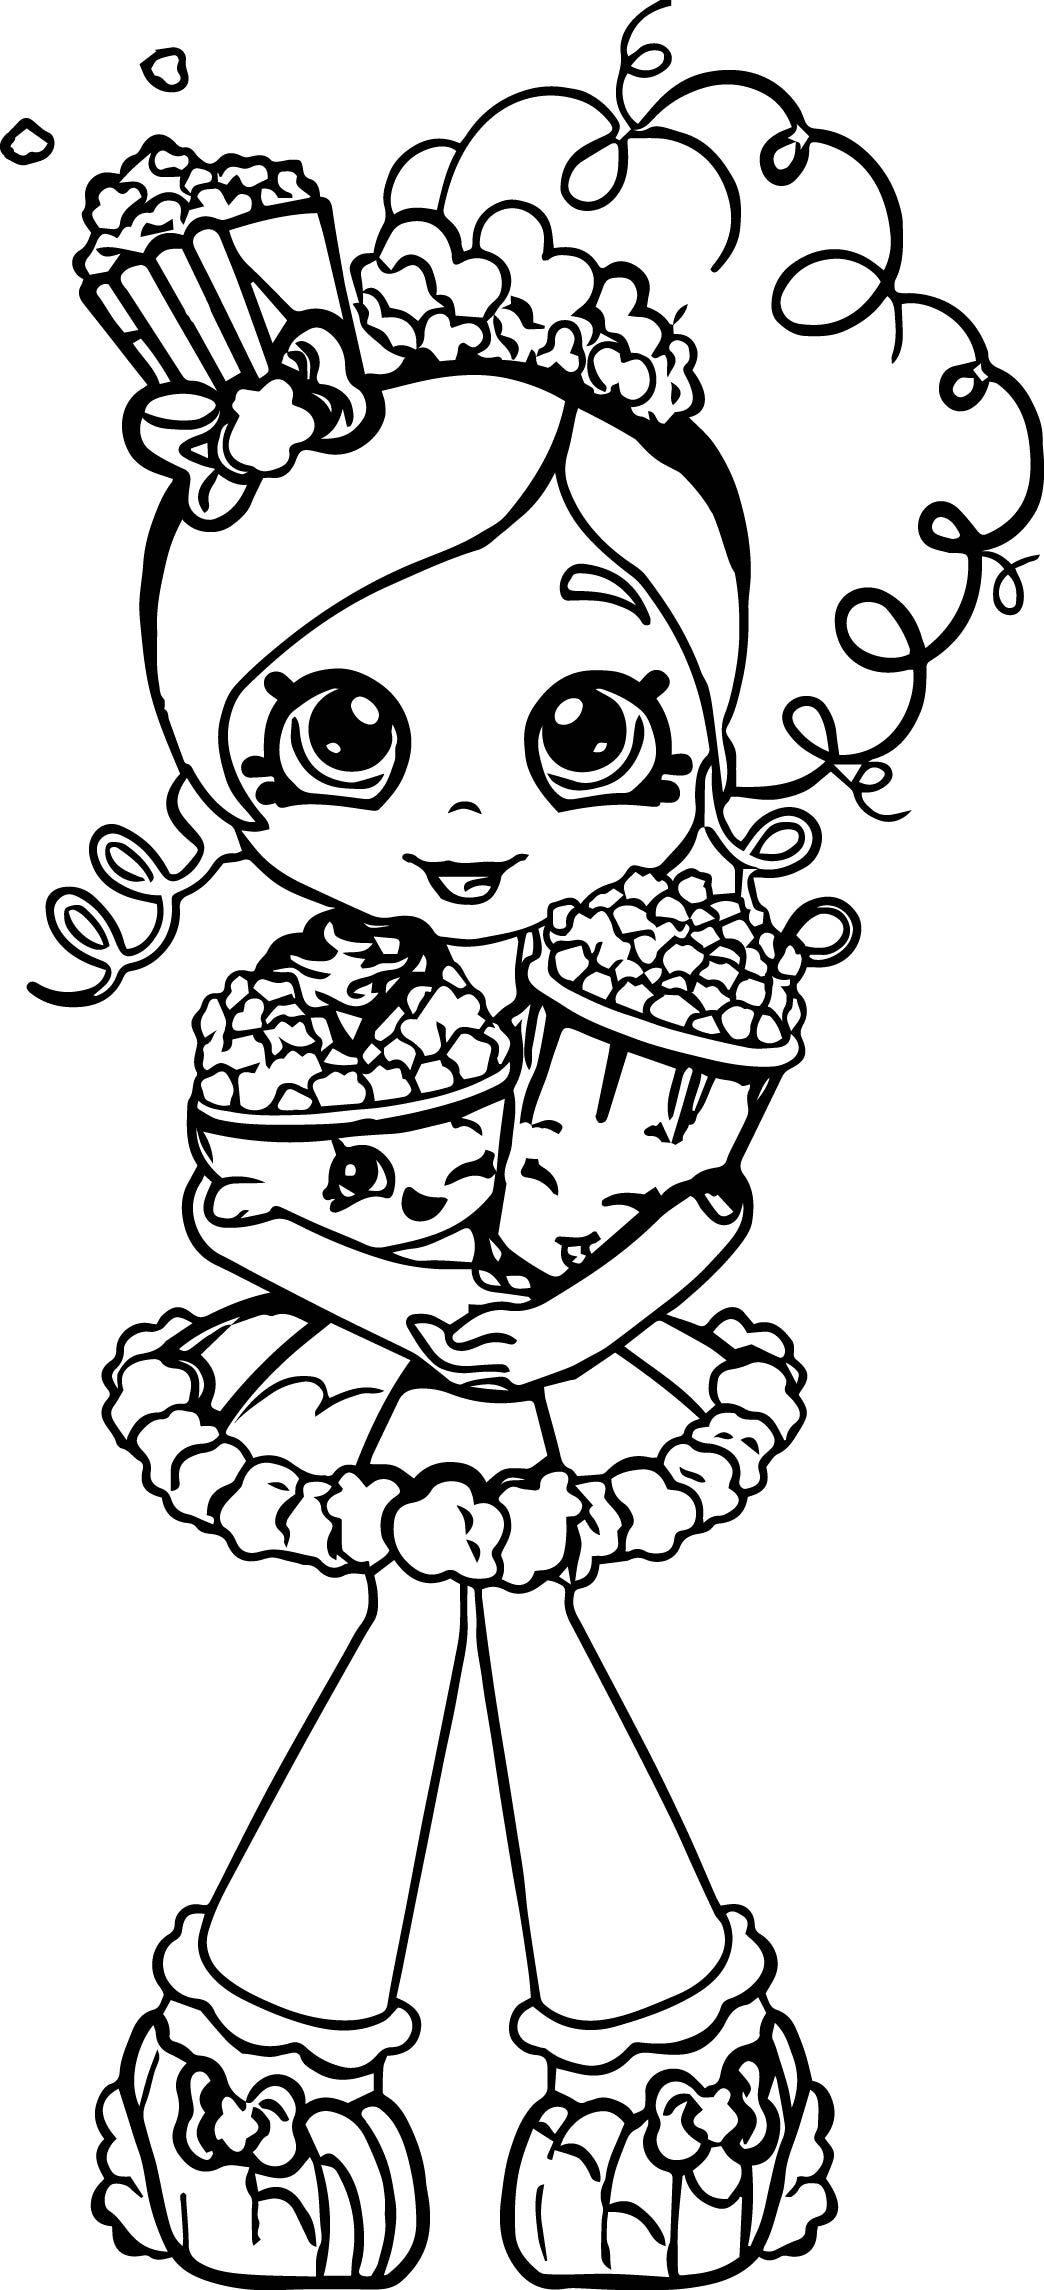 Popcorn Shopkins Girl Coloring Page